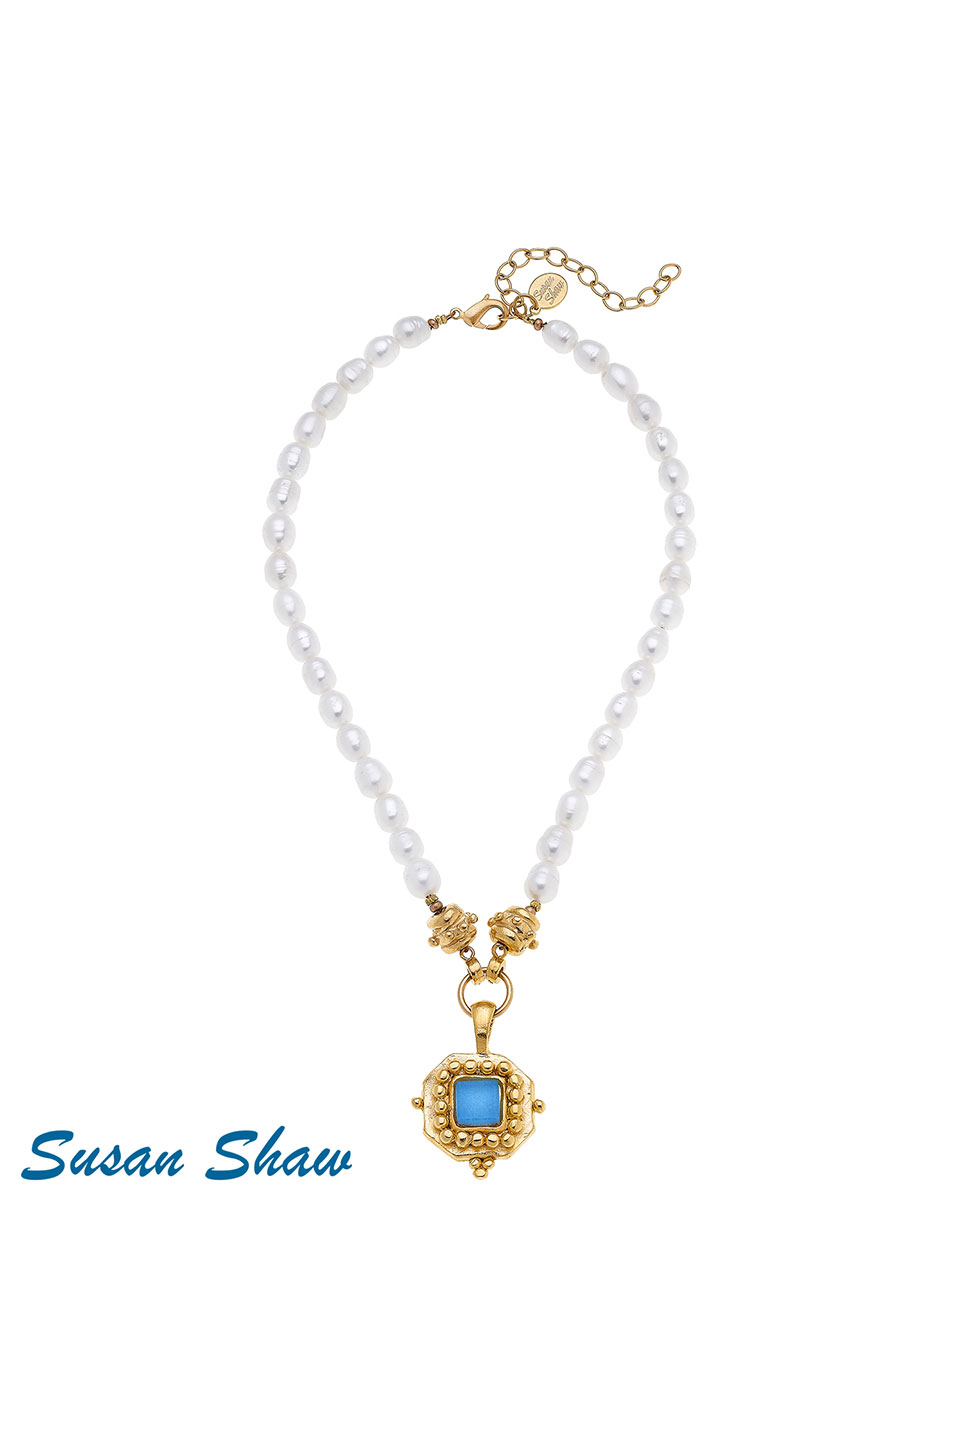 Susan Shaw Handcast Gold Square With Aqua French Glass On Genuine Pearl Necklace